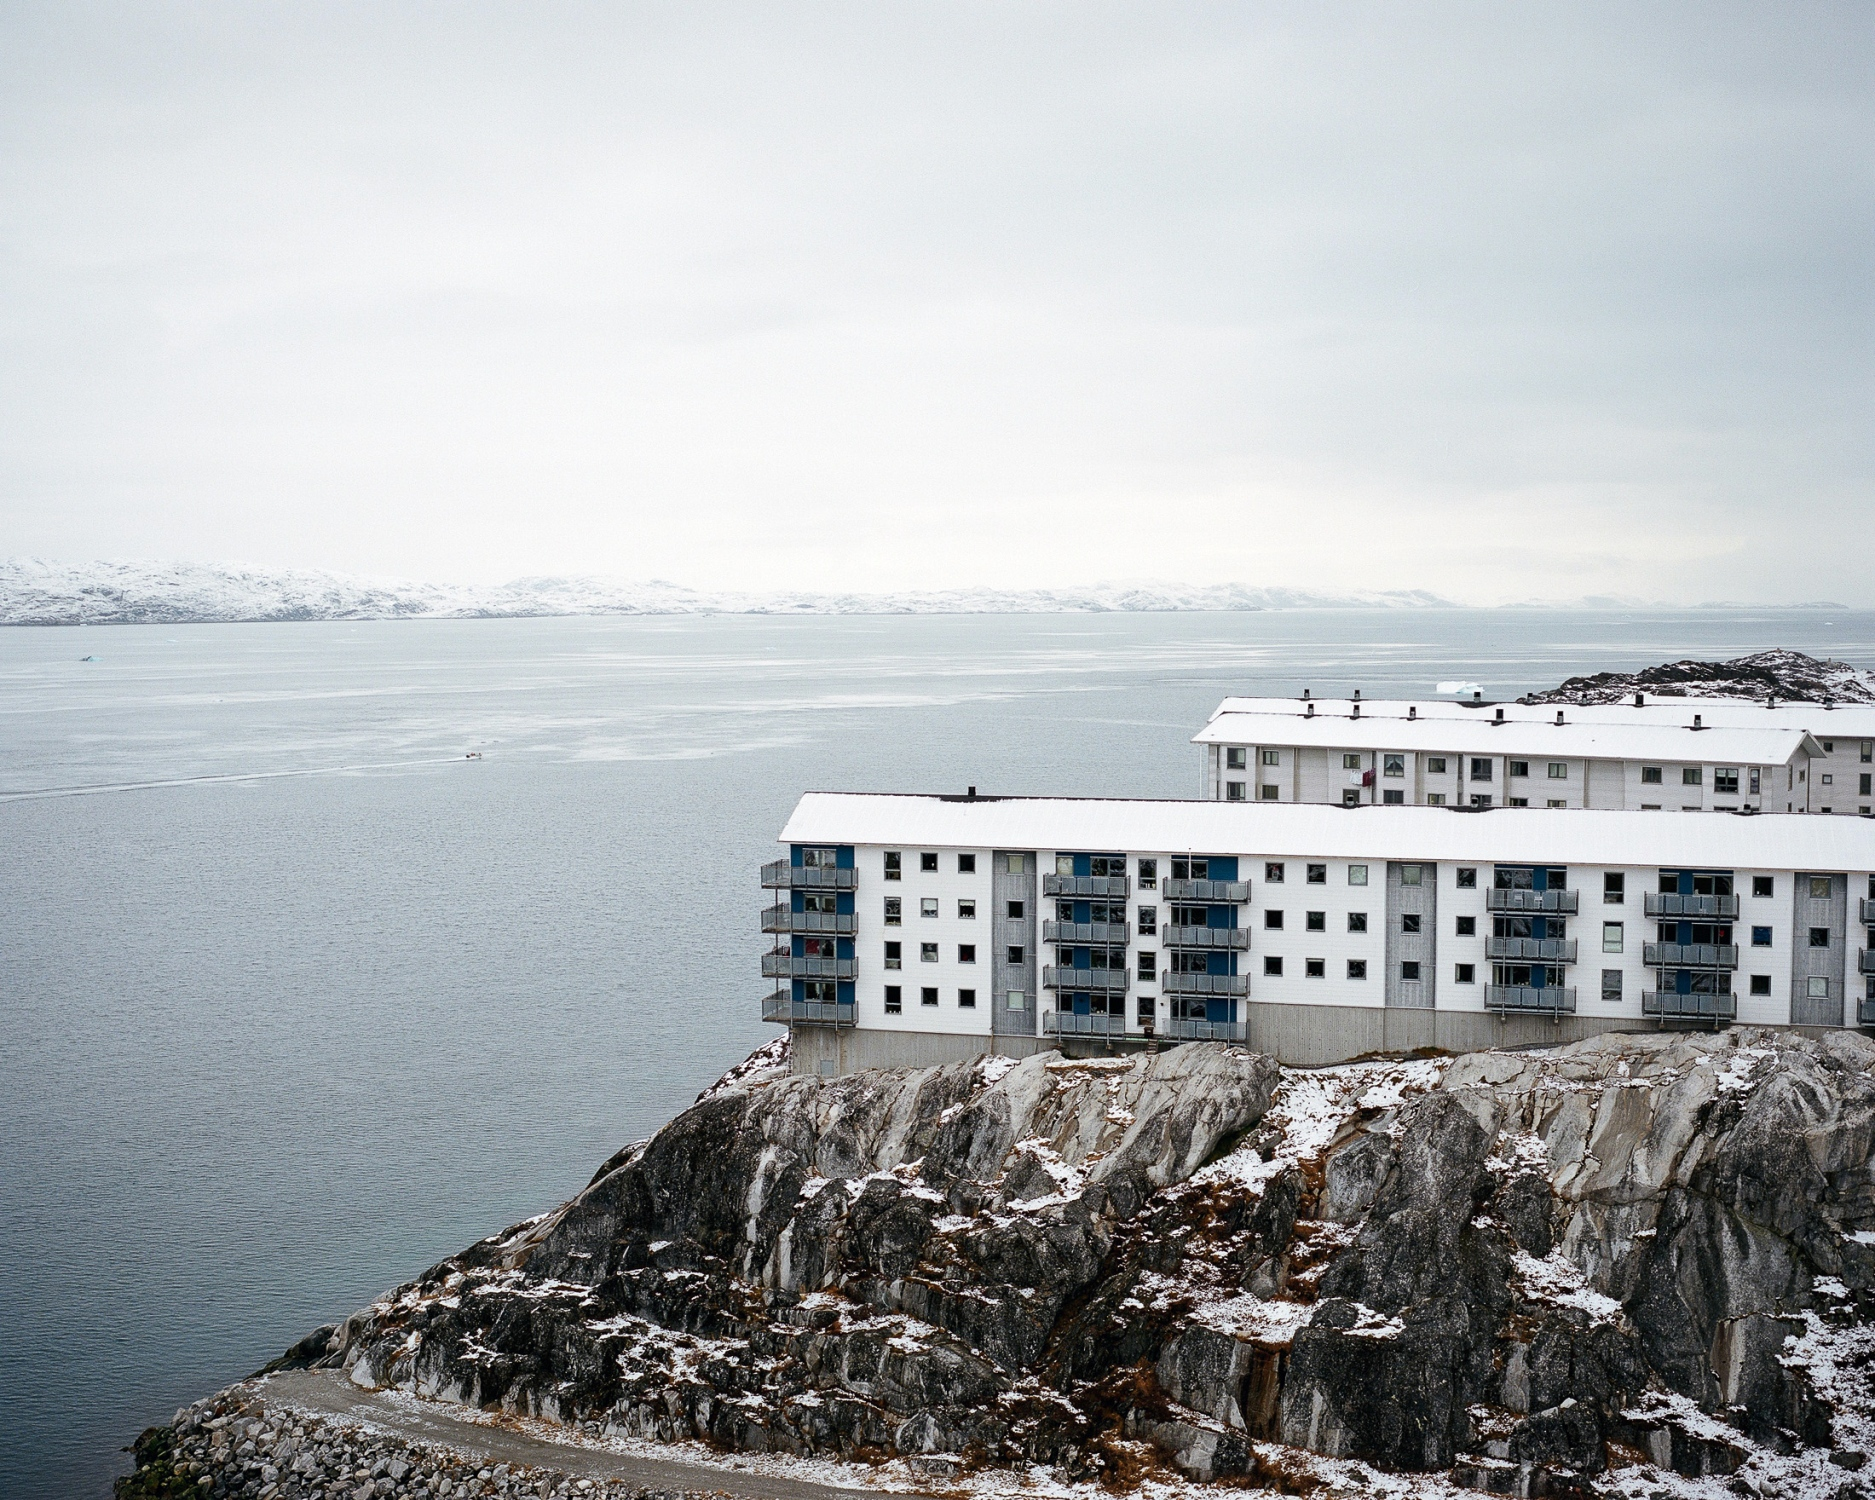 Residential building in the capital Nuuk. Nuuk is the administrative center of Greenland in habited by 15.000 people.  Nuuk has got over the recent decades a fast growth of its population. During the seventies many Greenlandic settlements were shut down and their inhabitants moved to Nuuk. This concentration politic has been stopped in the 90s causing a lot of social issues. But the population growth continue by over a third since 1990, and risen by almost 21% since 2000. In addition to those born in Greenland, data from 2015 showed 3,636 were born outside the country.